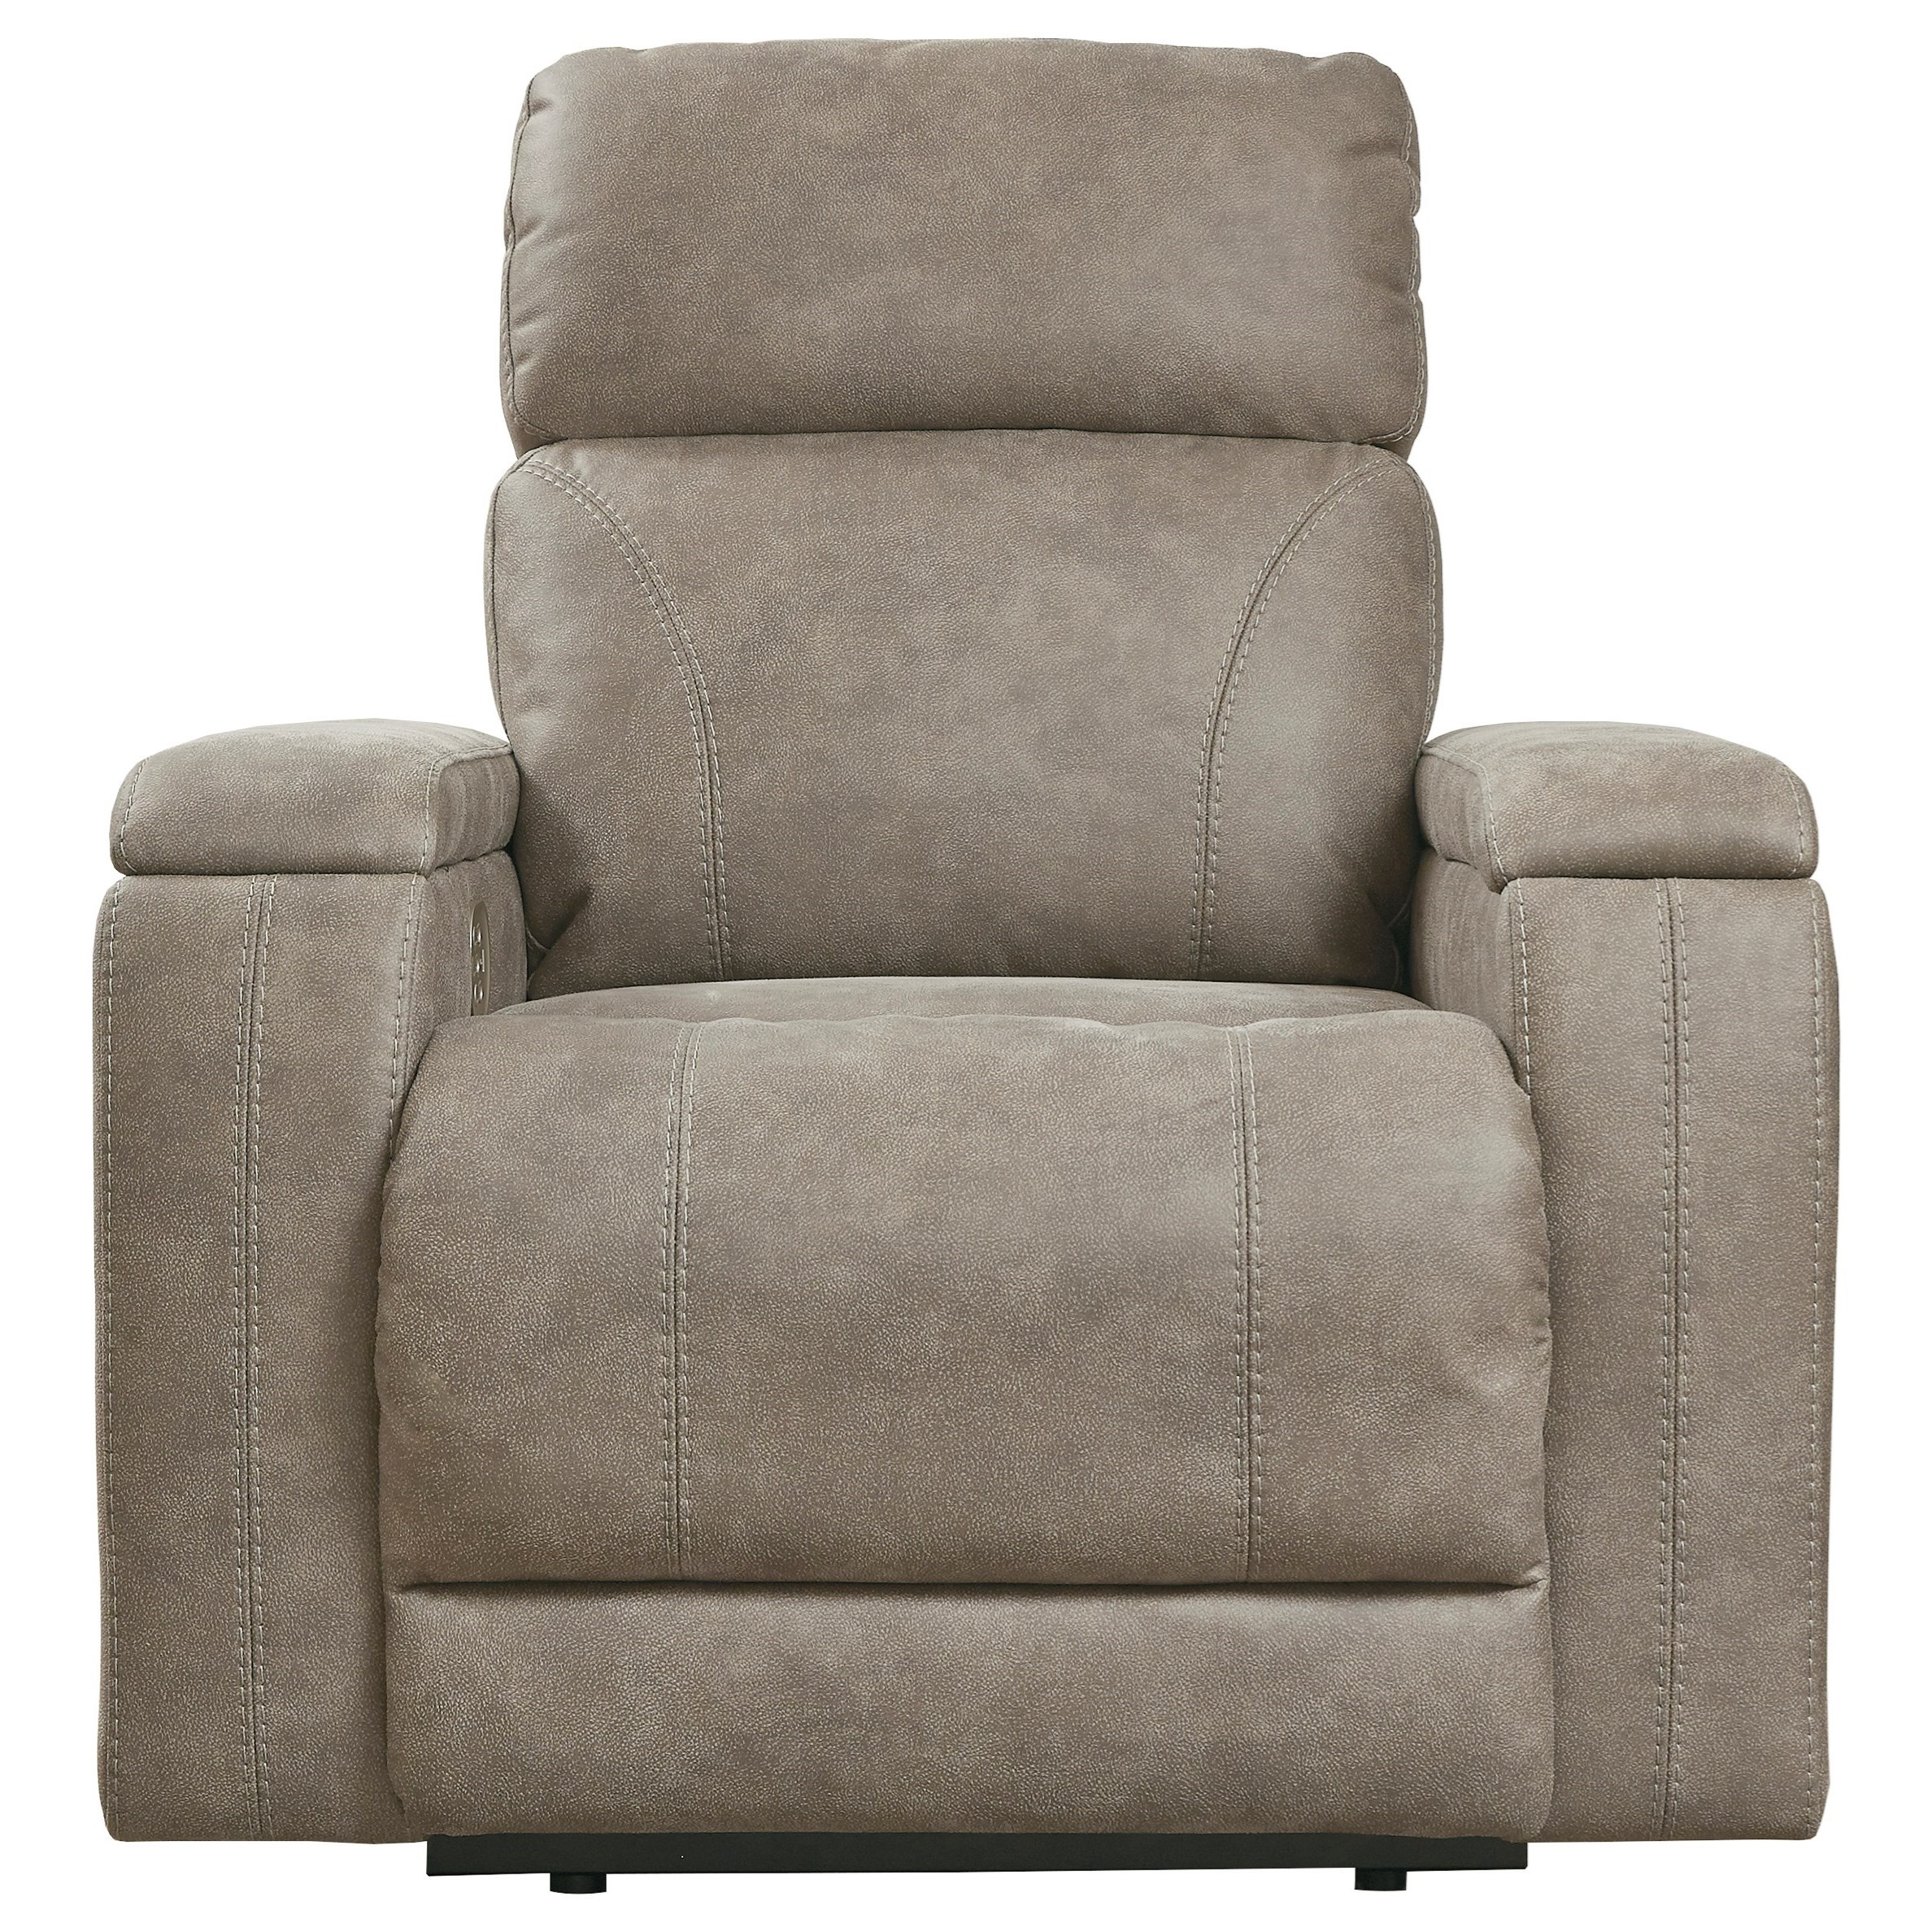 Vendor 3 Rowlett 0184570 Contemporary Power Recliner With Adjustable Headrest And Built In Usb Charger Becker Furniture Recliners